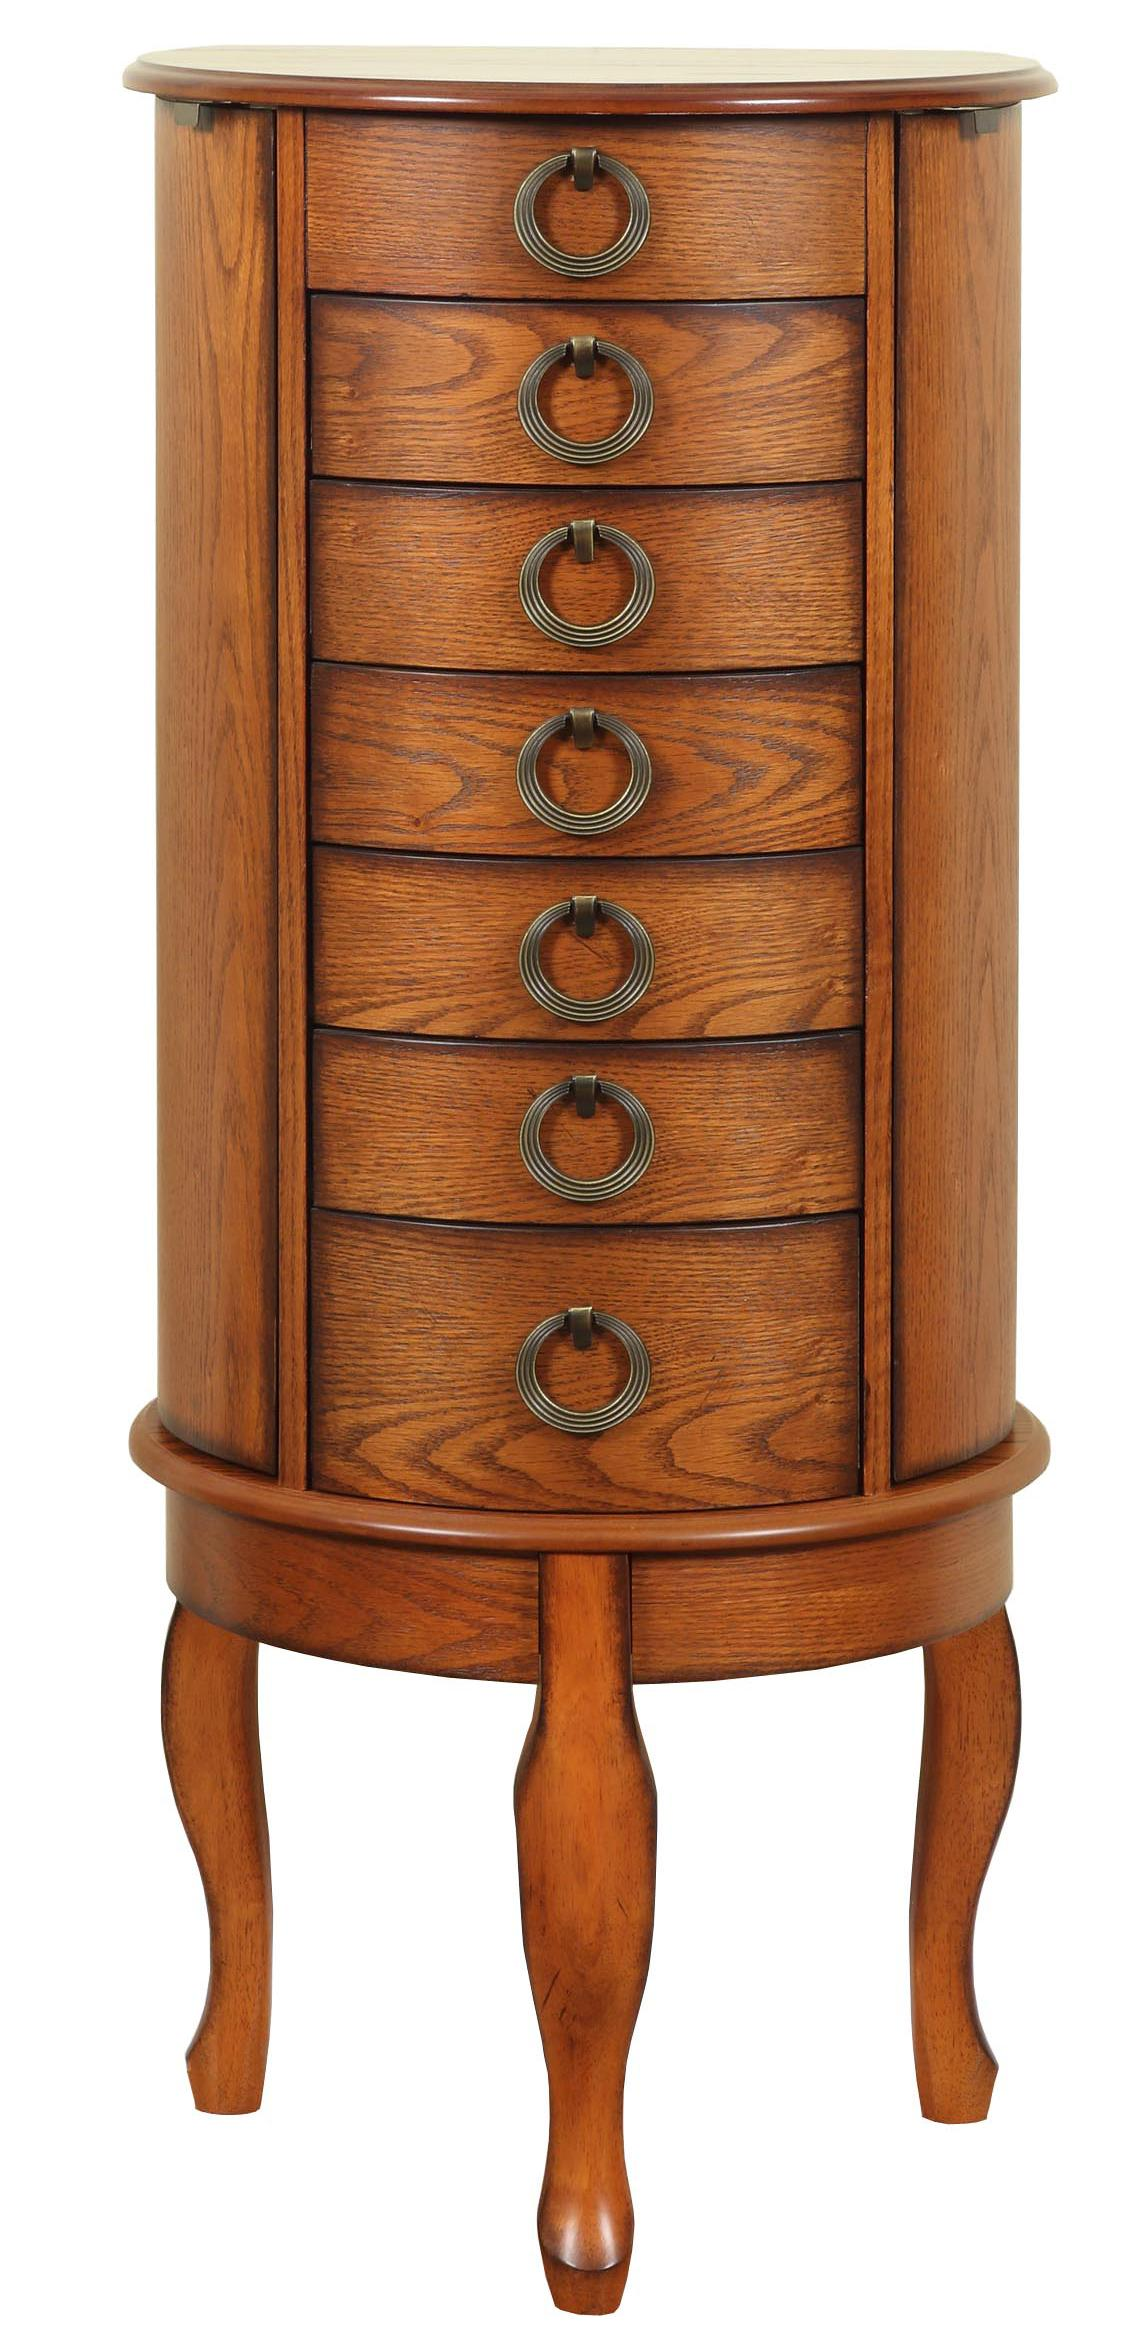 Powell Jewelry Armoire Burnished Oak Jewelry Armoire - Item Number: 604-318